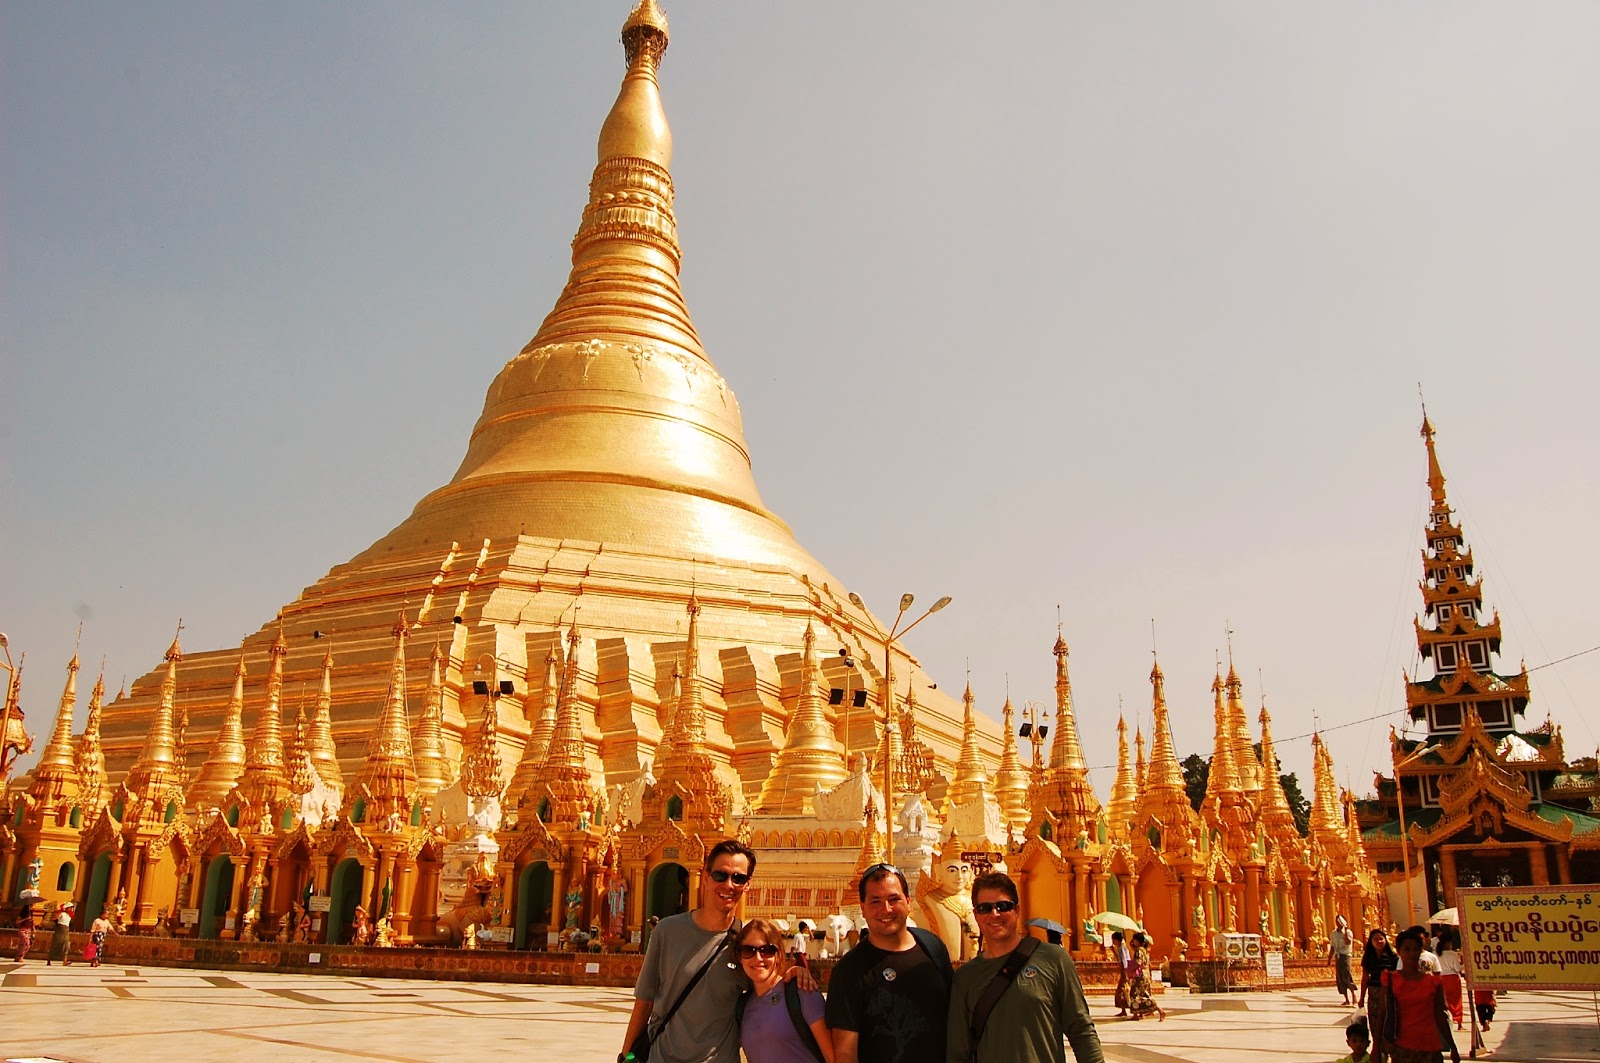 Tourists take a photo as the souvenir in Shwedagon Pagoda Festival